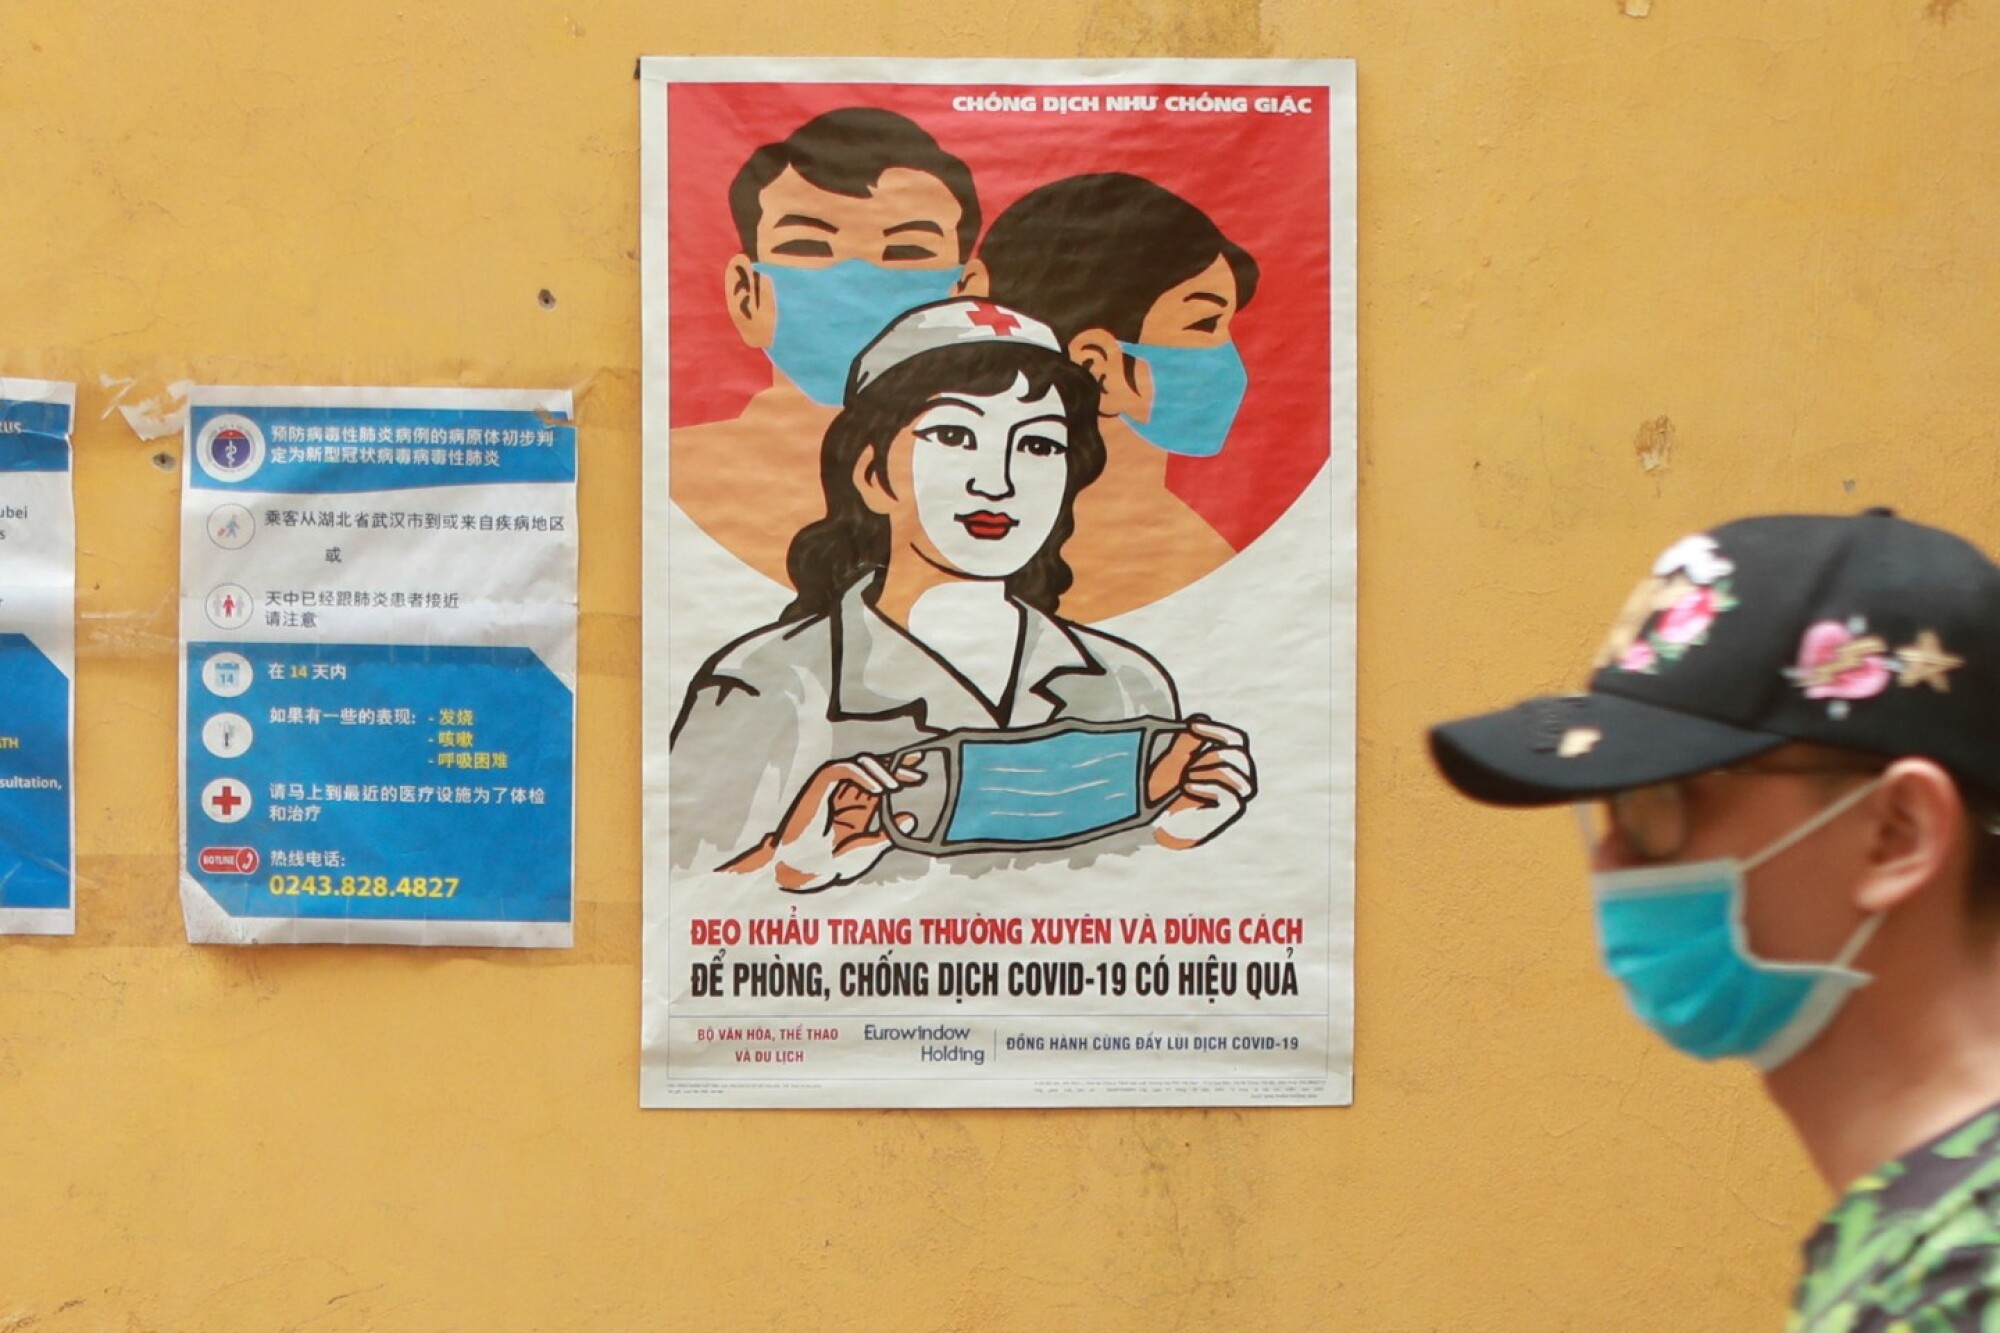 A man walks past a poster encouraging people to wear face masks correctly in Hanoi, Vietnam. The country began lifting its nationwide lockdown April 23.